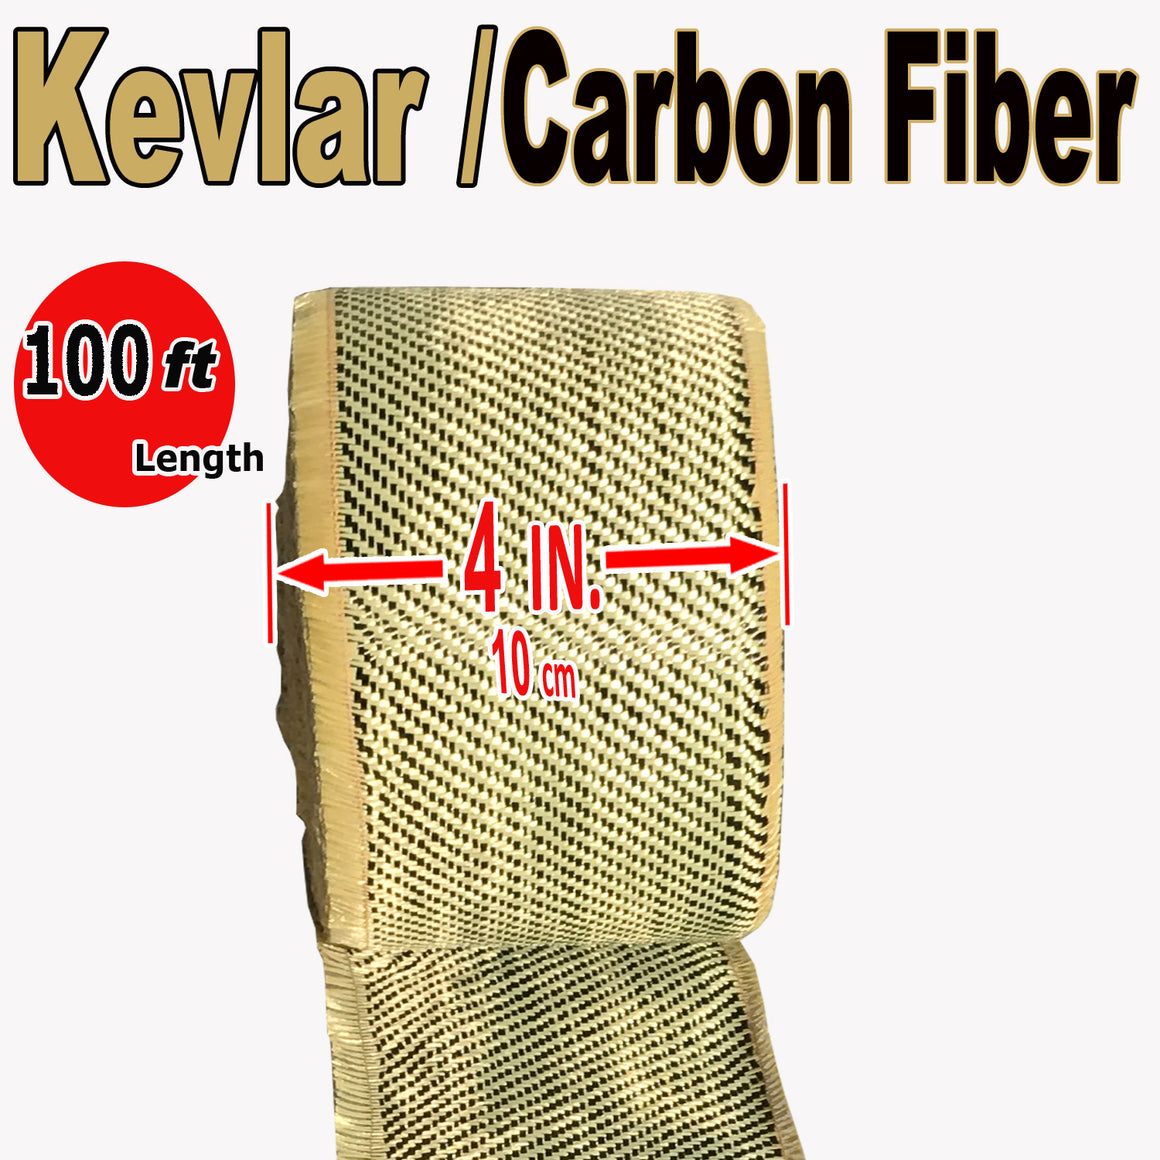 KEVLAR ARAMID  Fabric - 4 in x 100 ft - Ylw/Blk Twill  - 240g/m2 - 3K TOW